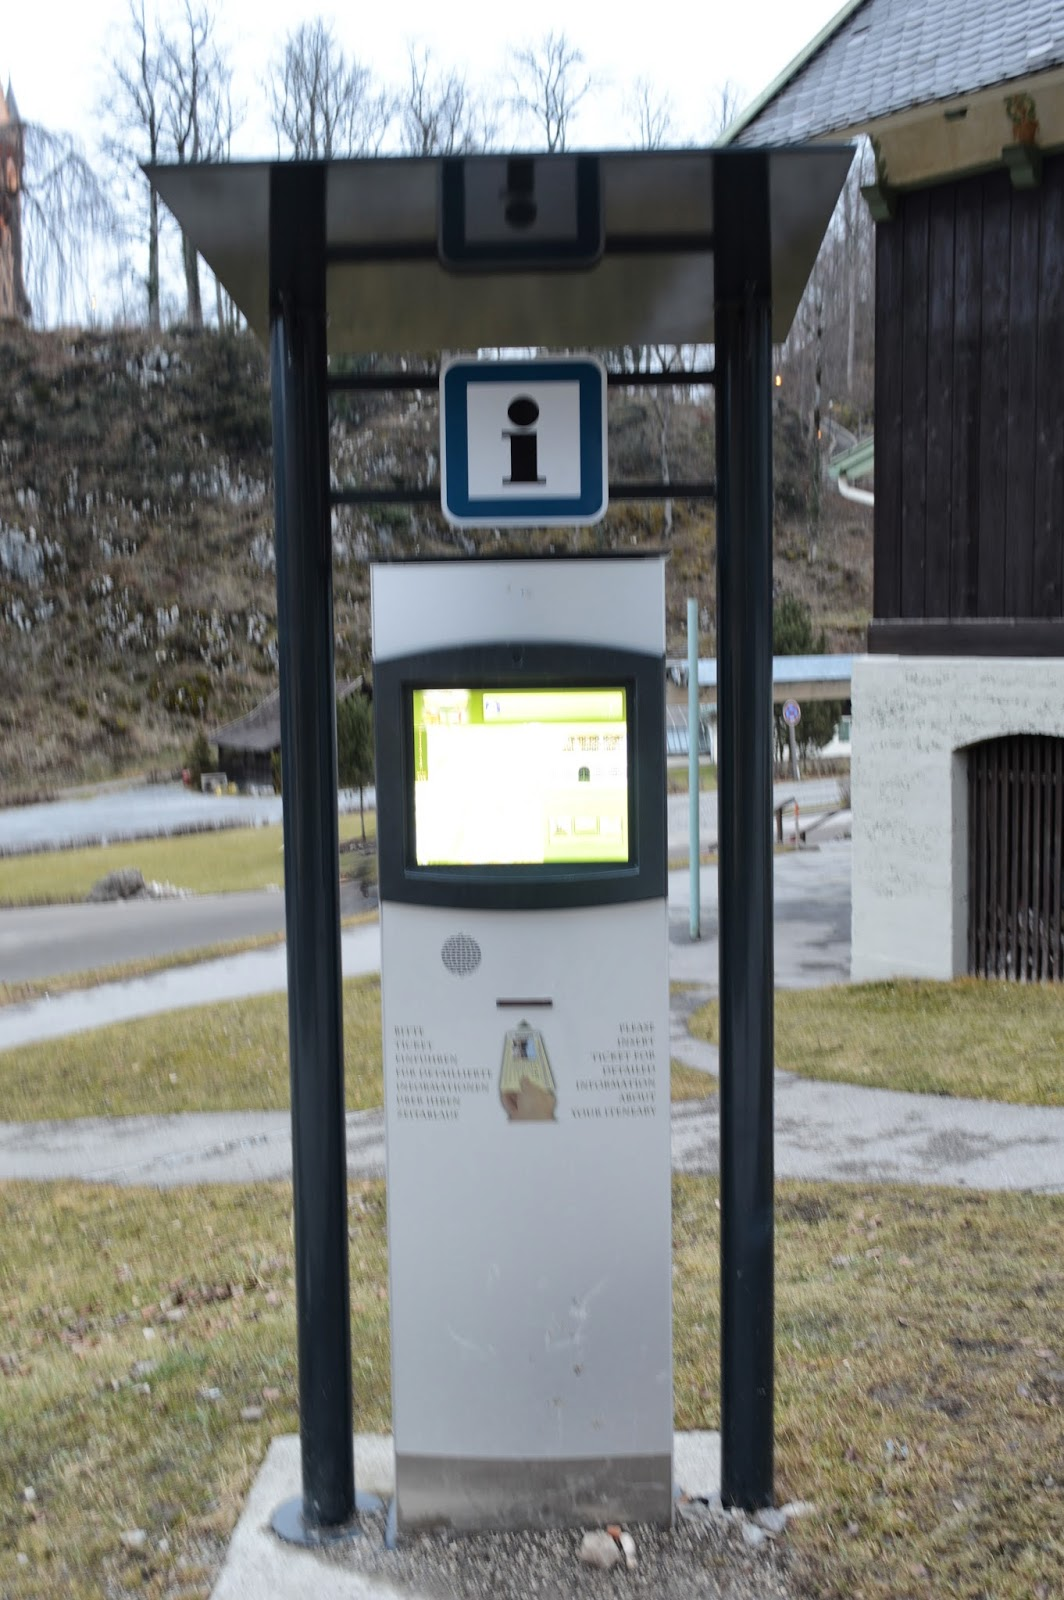 get additional information about sightseeing, shopping restaurant and more on your way to the castles with these info terminals